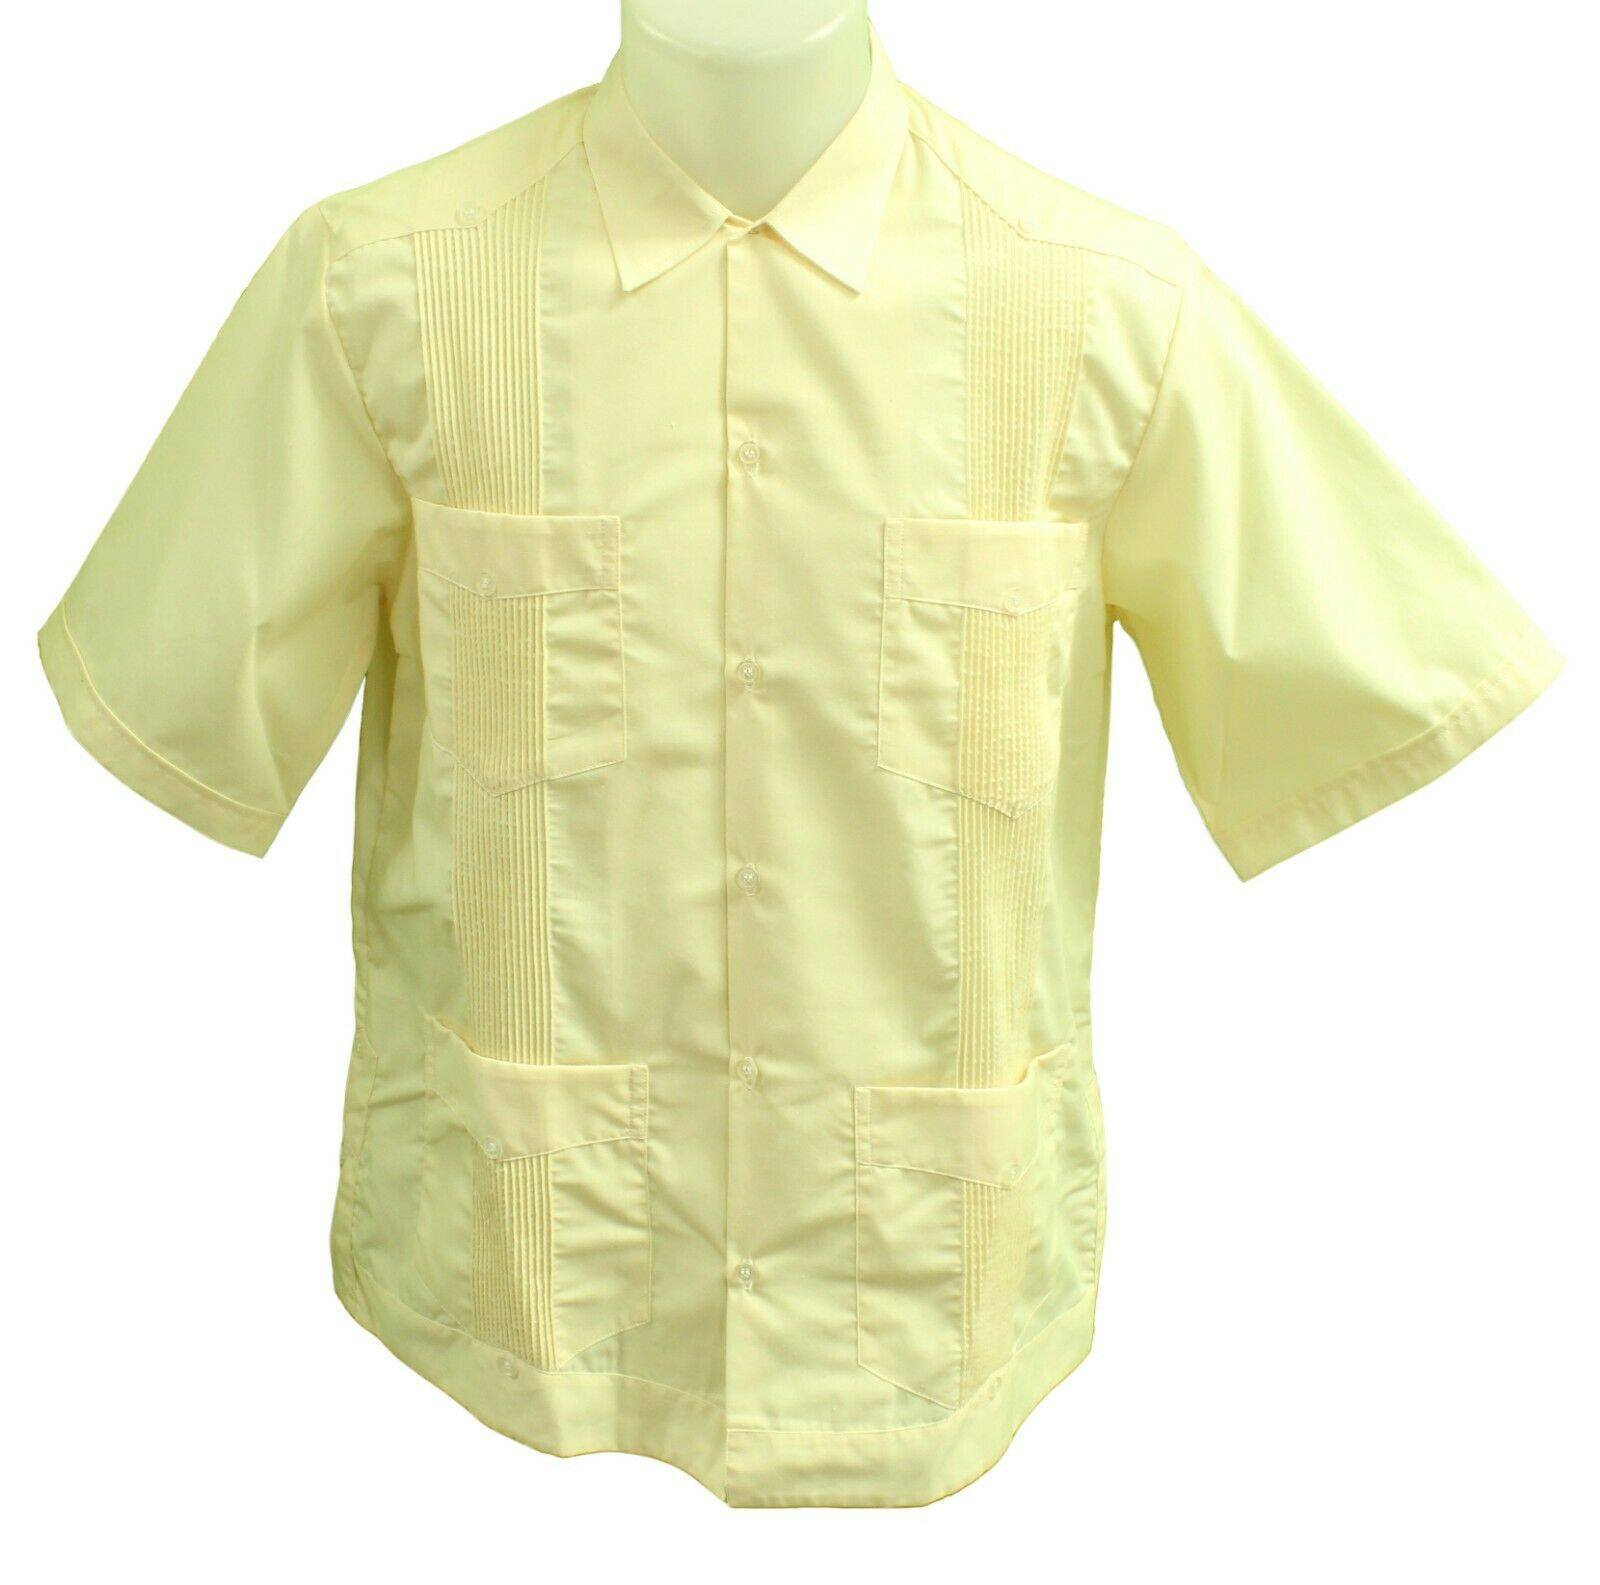 CLASSIC MEXICAN GUAYABERA Shirt, Button Down, LIGHT YELLOW Casual FIESTA SHIRT